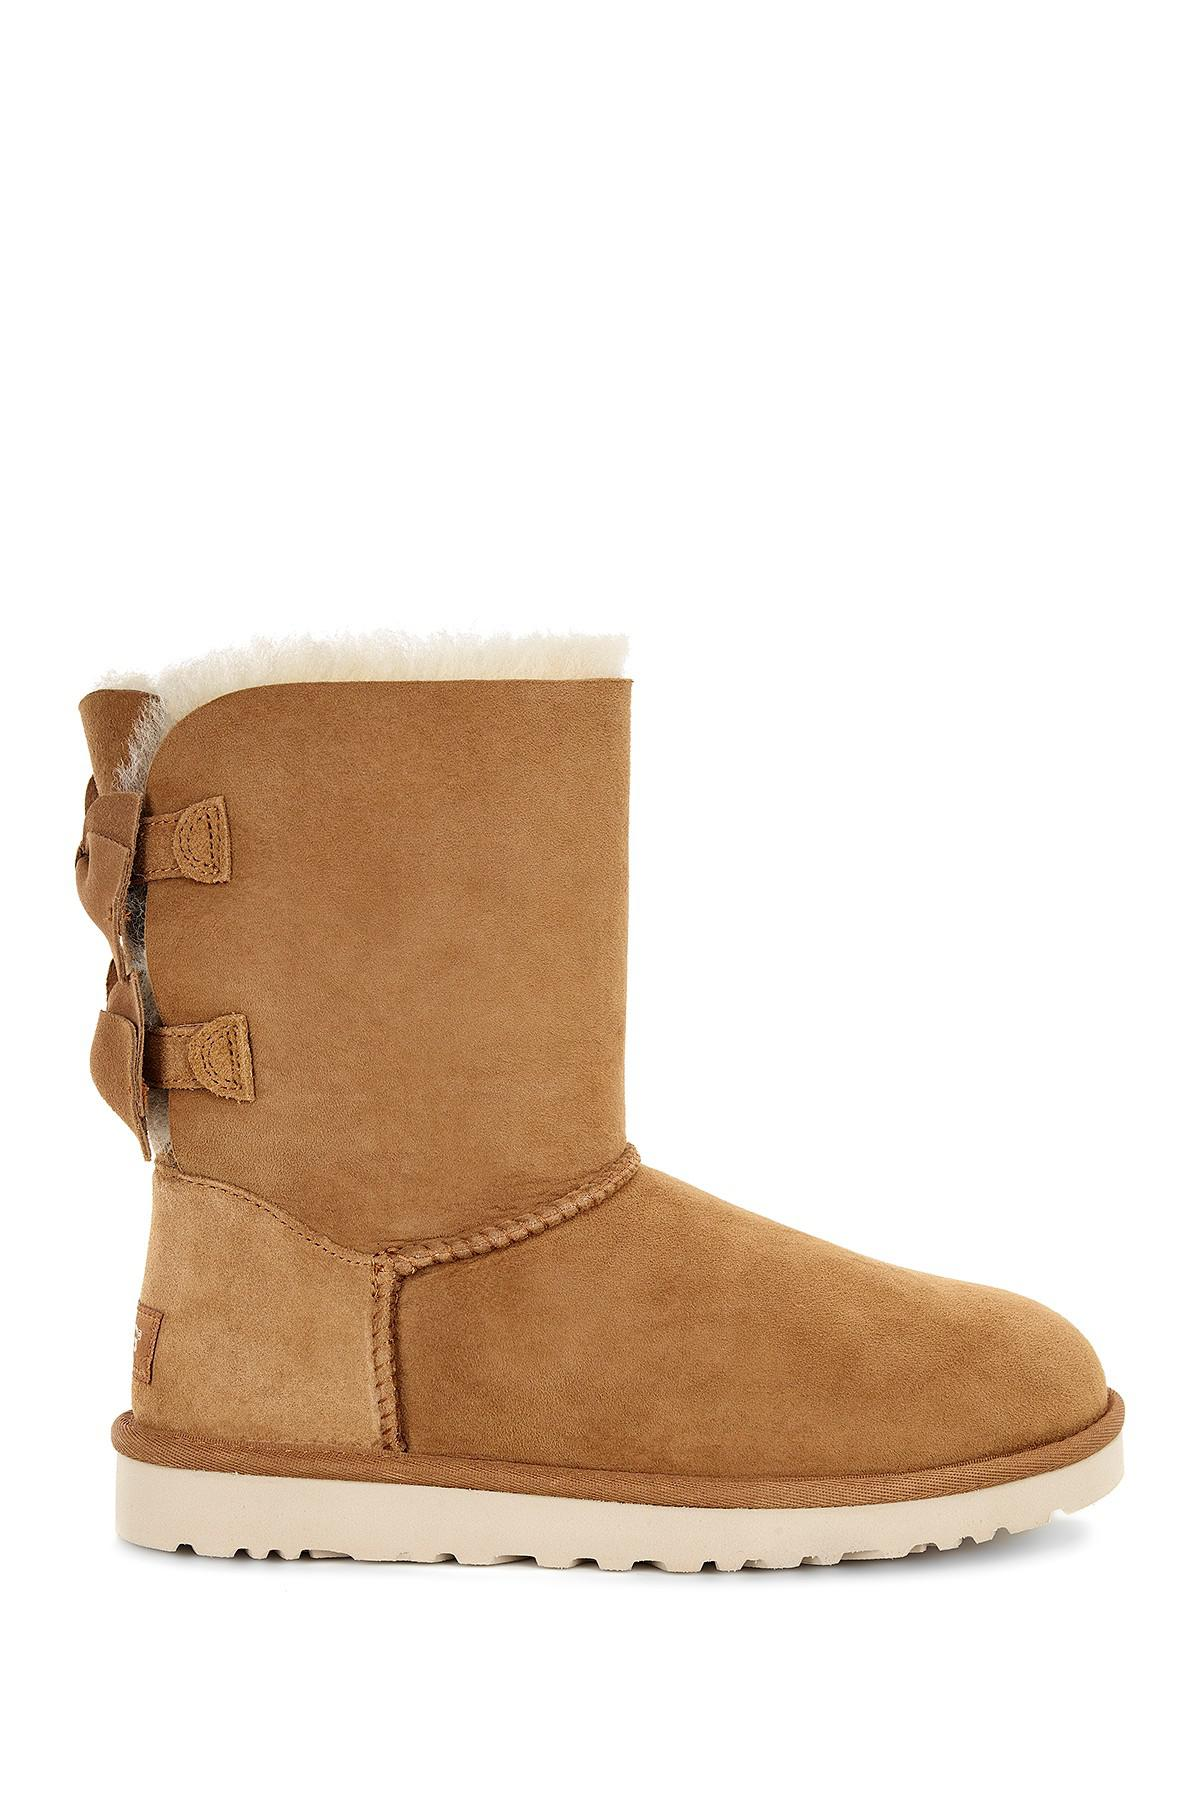 Ugg Meilani Bow Uggpure Tm Lined Boot In Brown Lyst